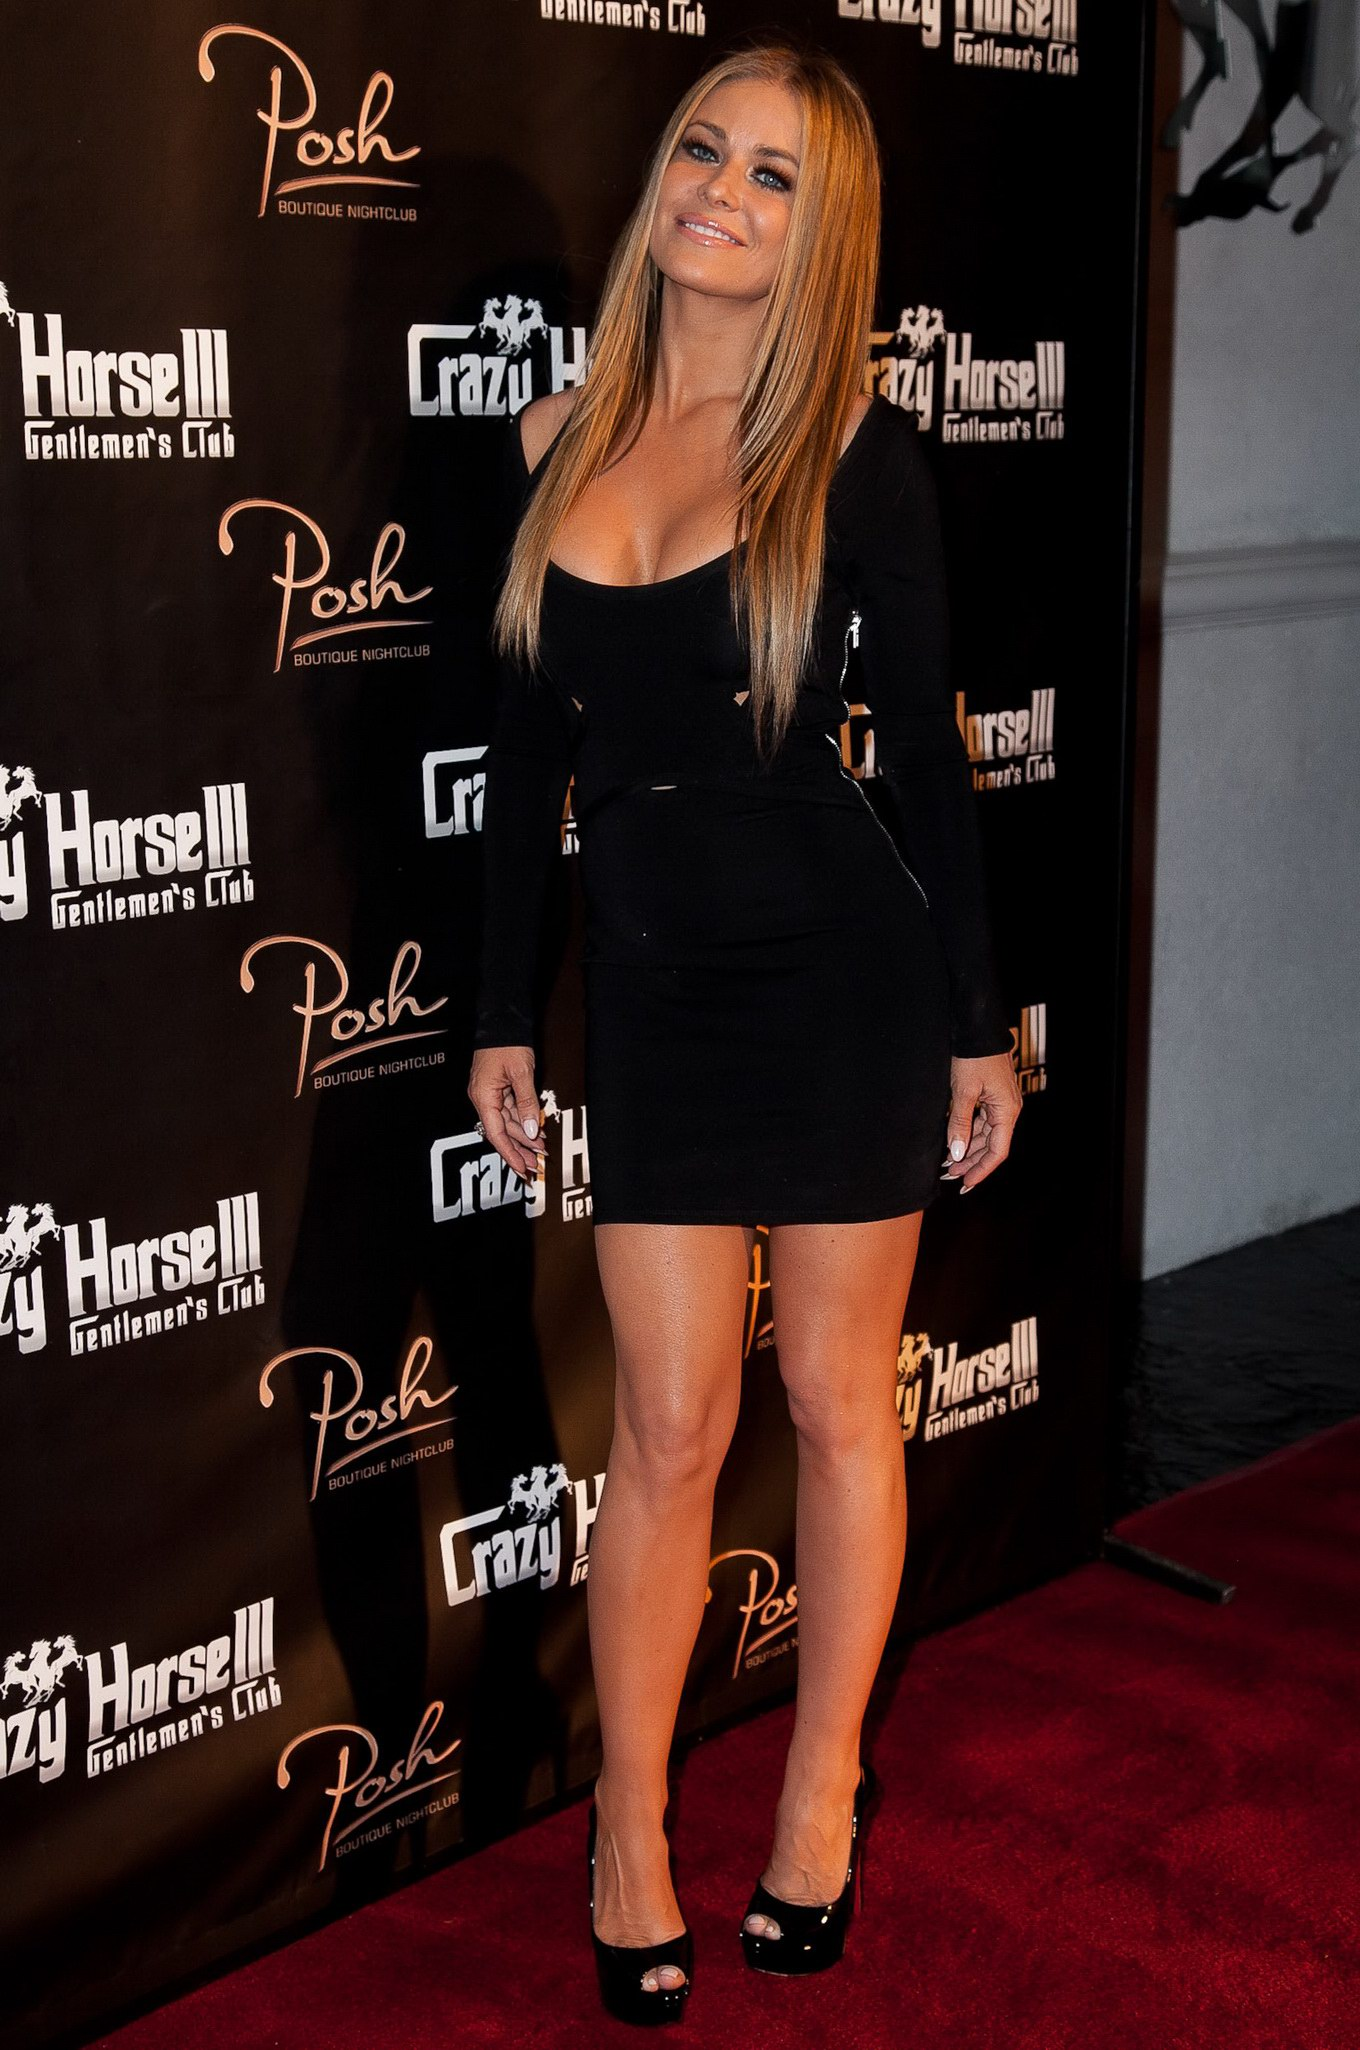 Carmen Electra Gets Spotted In Her Tight Top